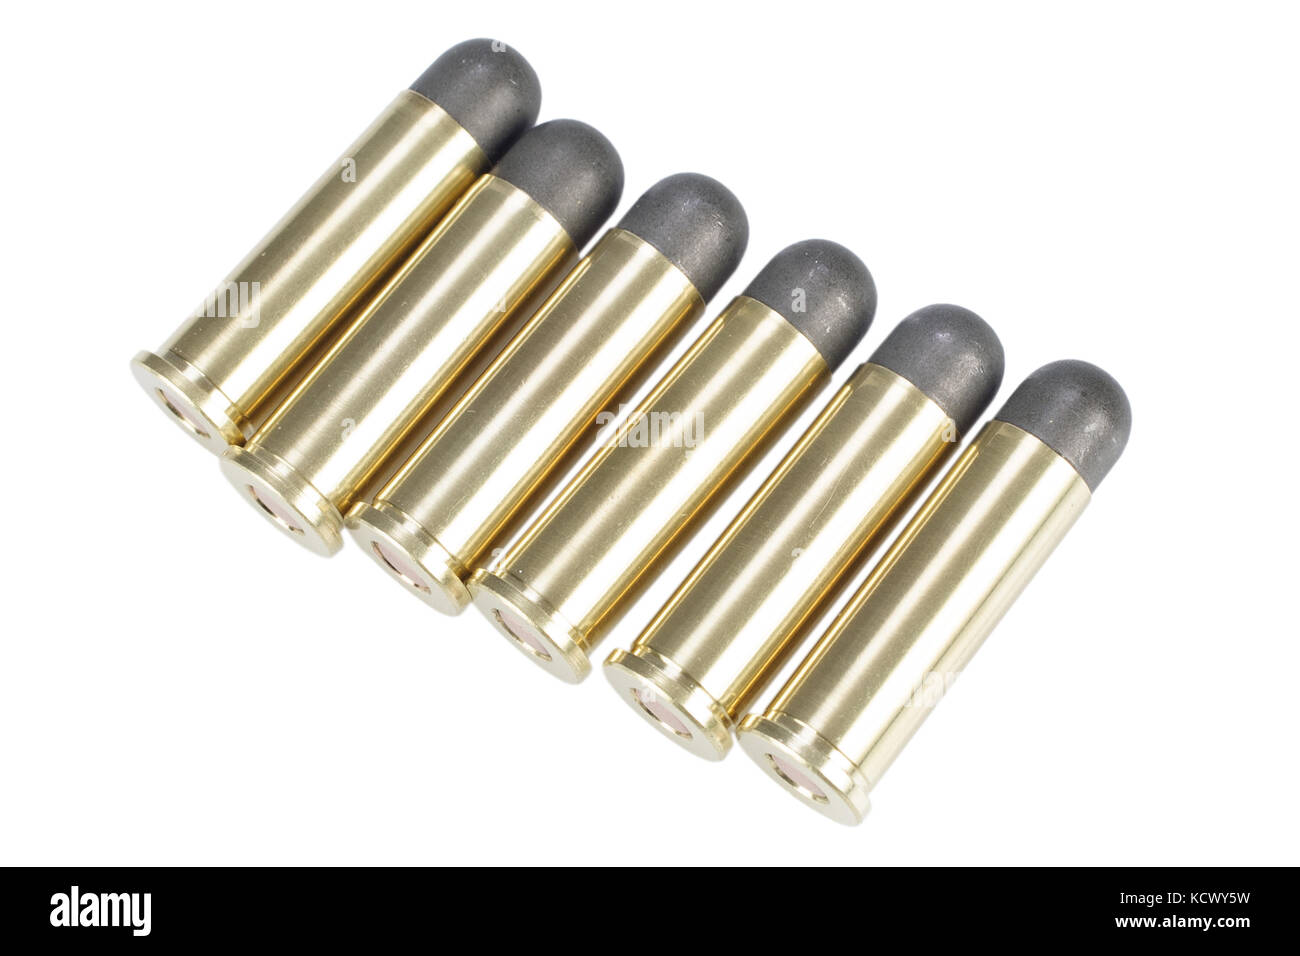 The .38 Special handgun cartridge isolated on white - Stock Image